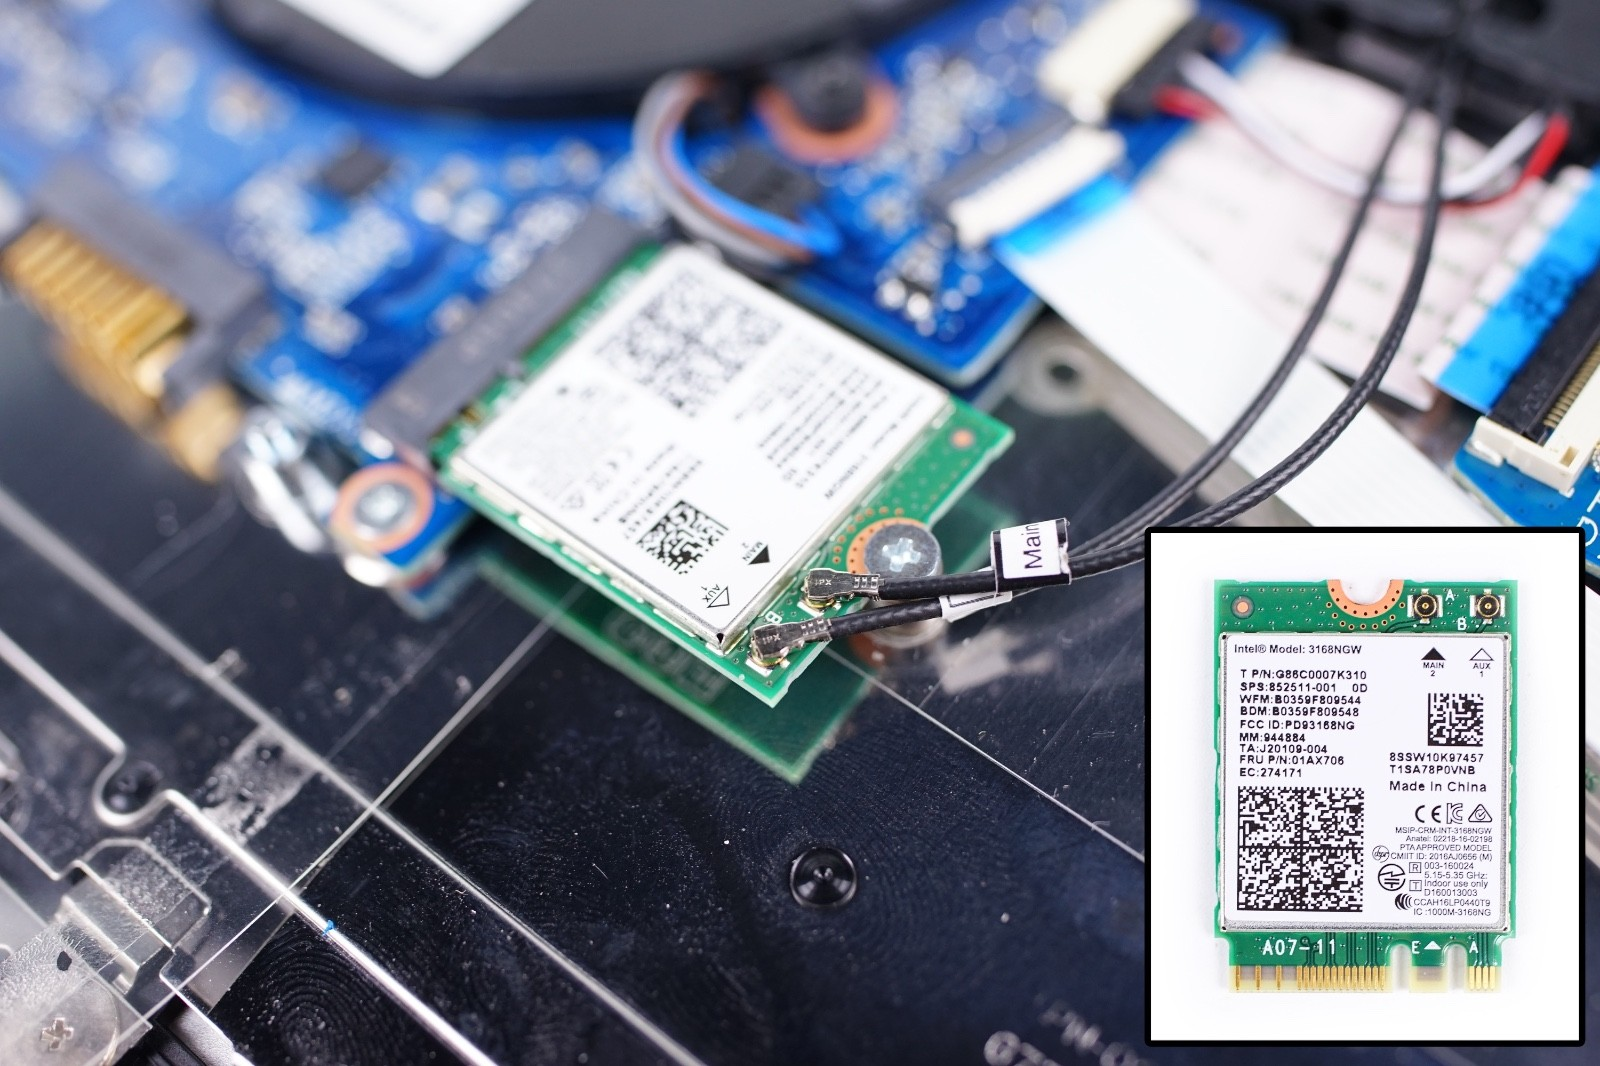 hp pavilion 15 ck000 disassembly and ram ssd and hdd upgrade